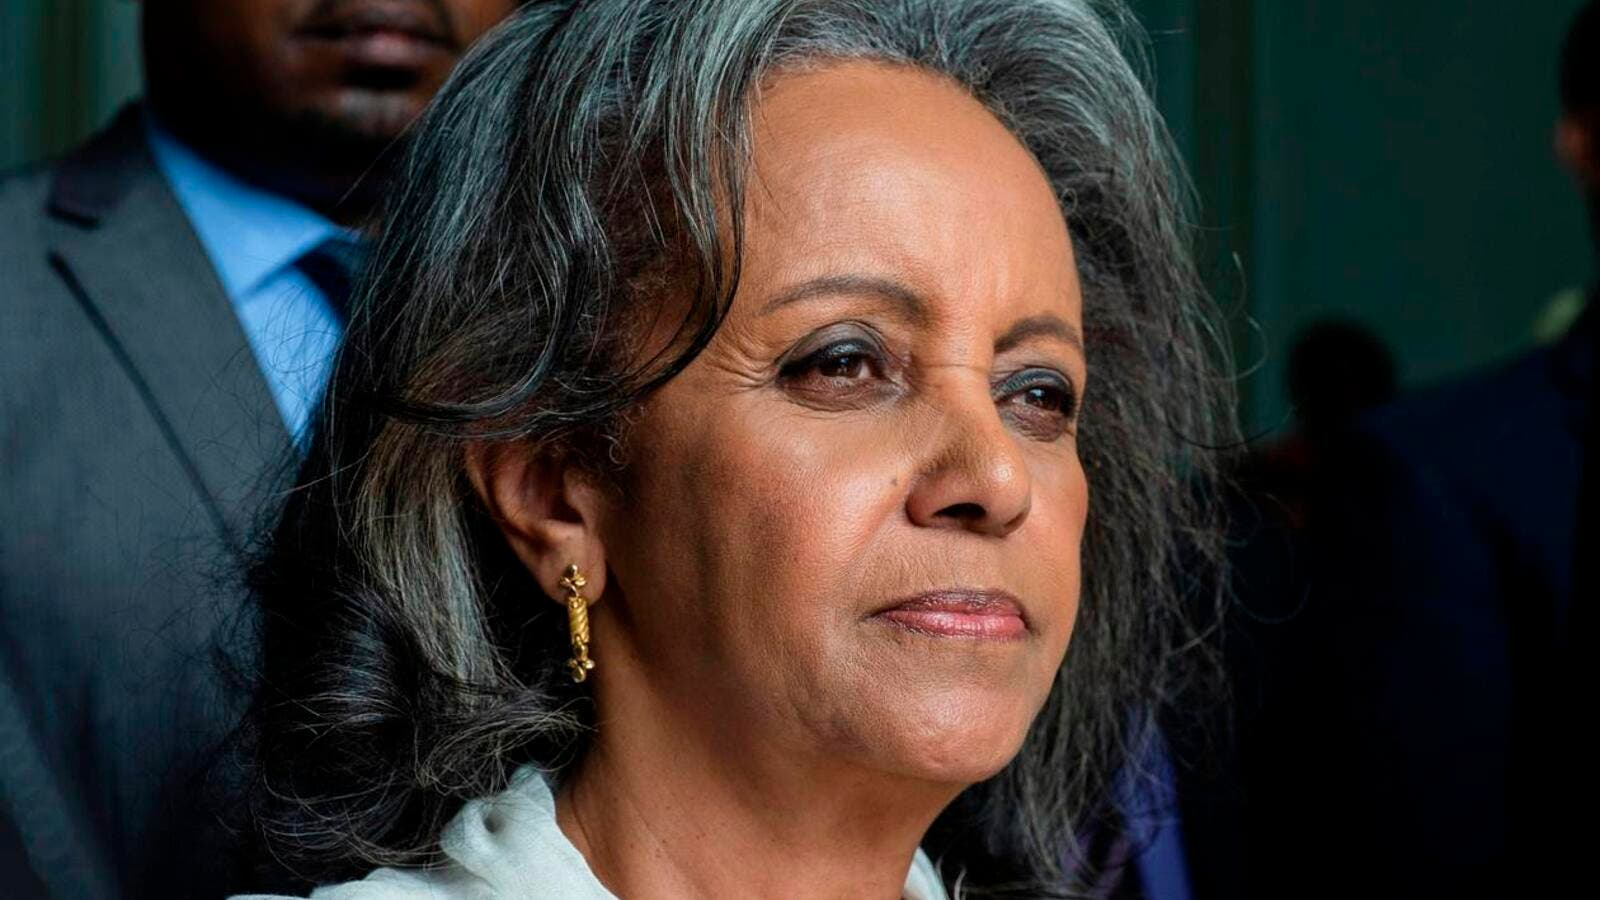 Ethiopian Parliament named Sahle-Work Zewde as the first woman president. (AFP/File)